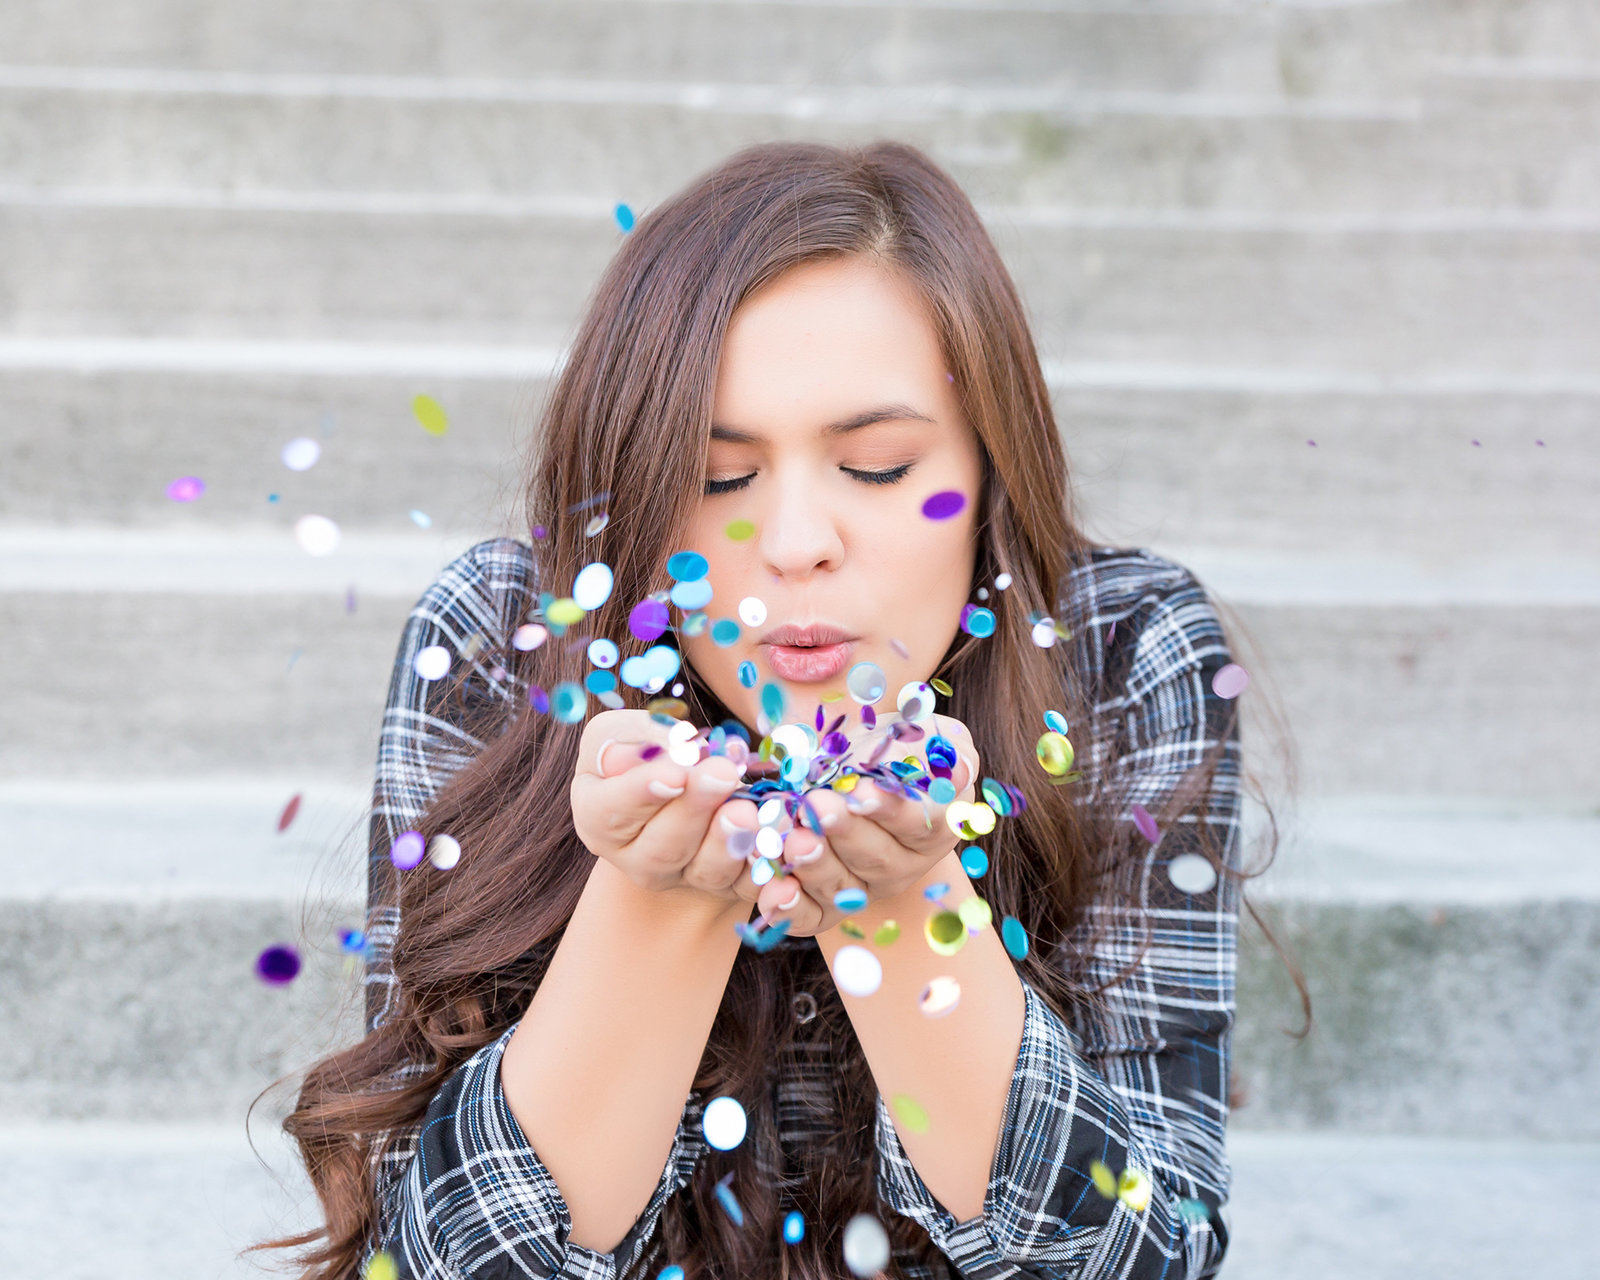 Senior girl on steps blowing confetti